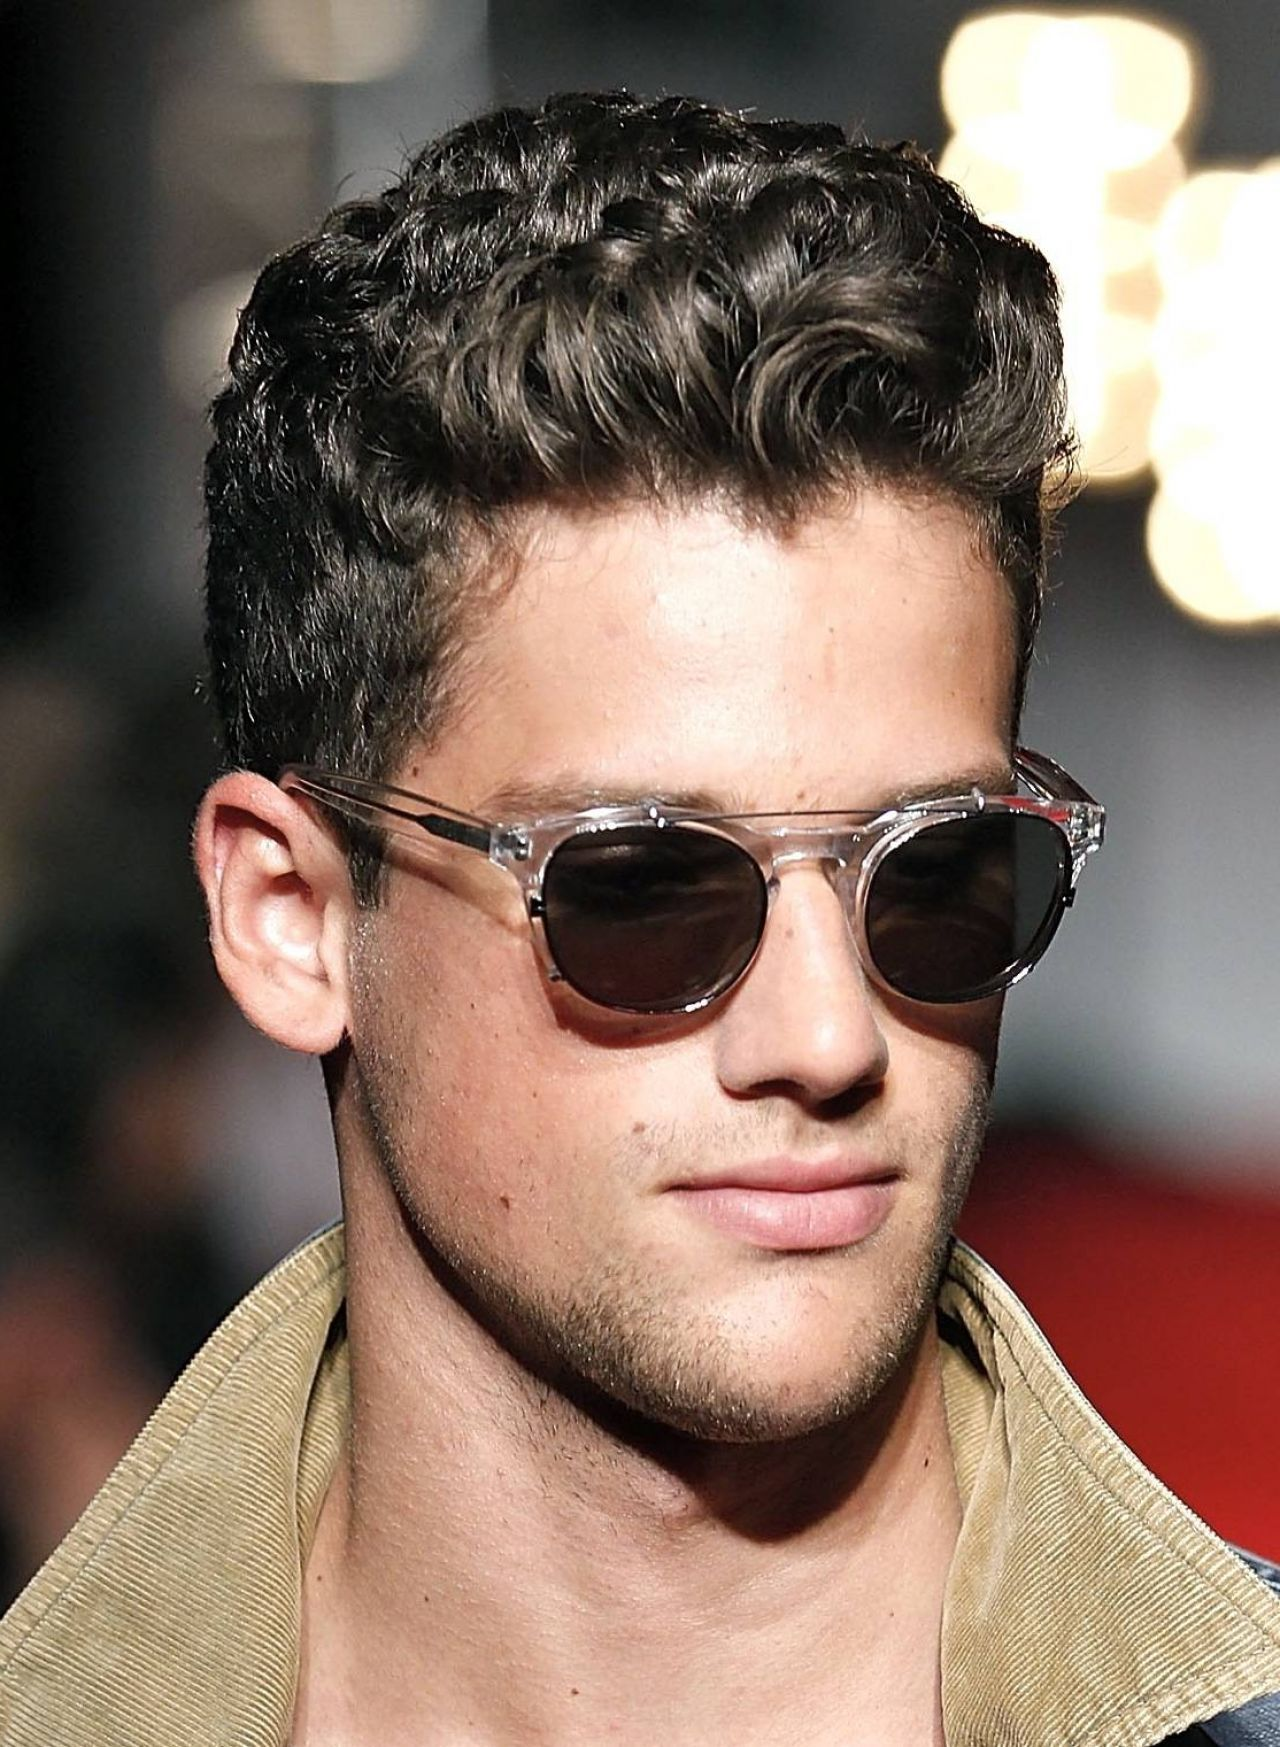 Short Hairstyles Men Thick Hair Medium Hairstyles With Natural Curly Hair And Soft Highlighted Curly Hair Men Mens Short Curly Hairstyles Male Haircuts Curly